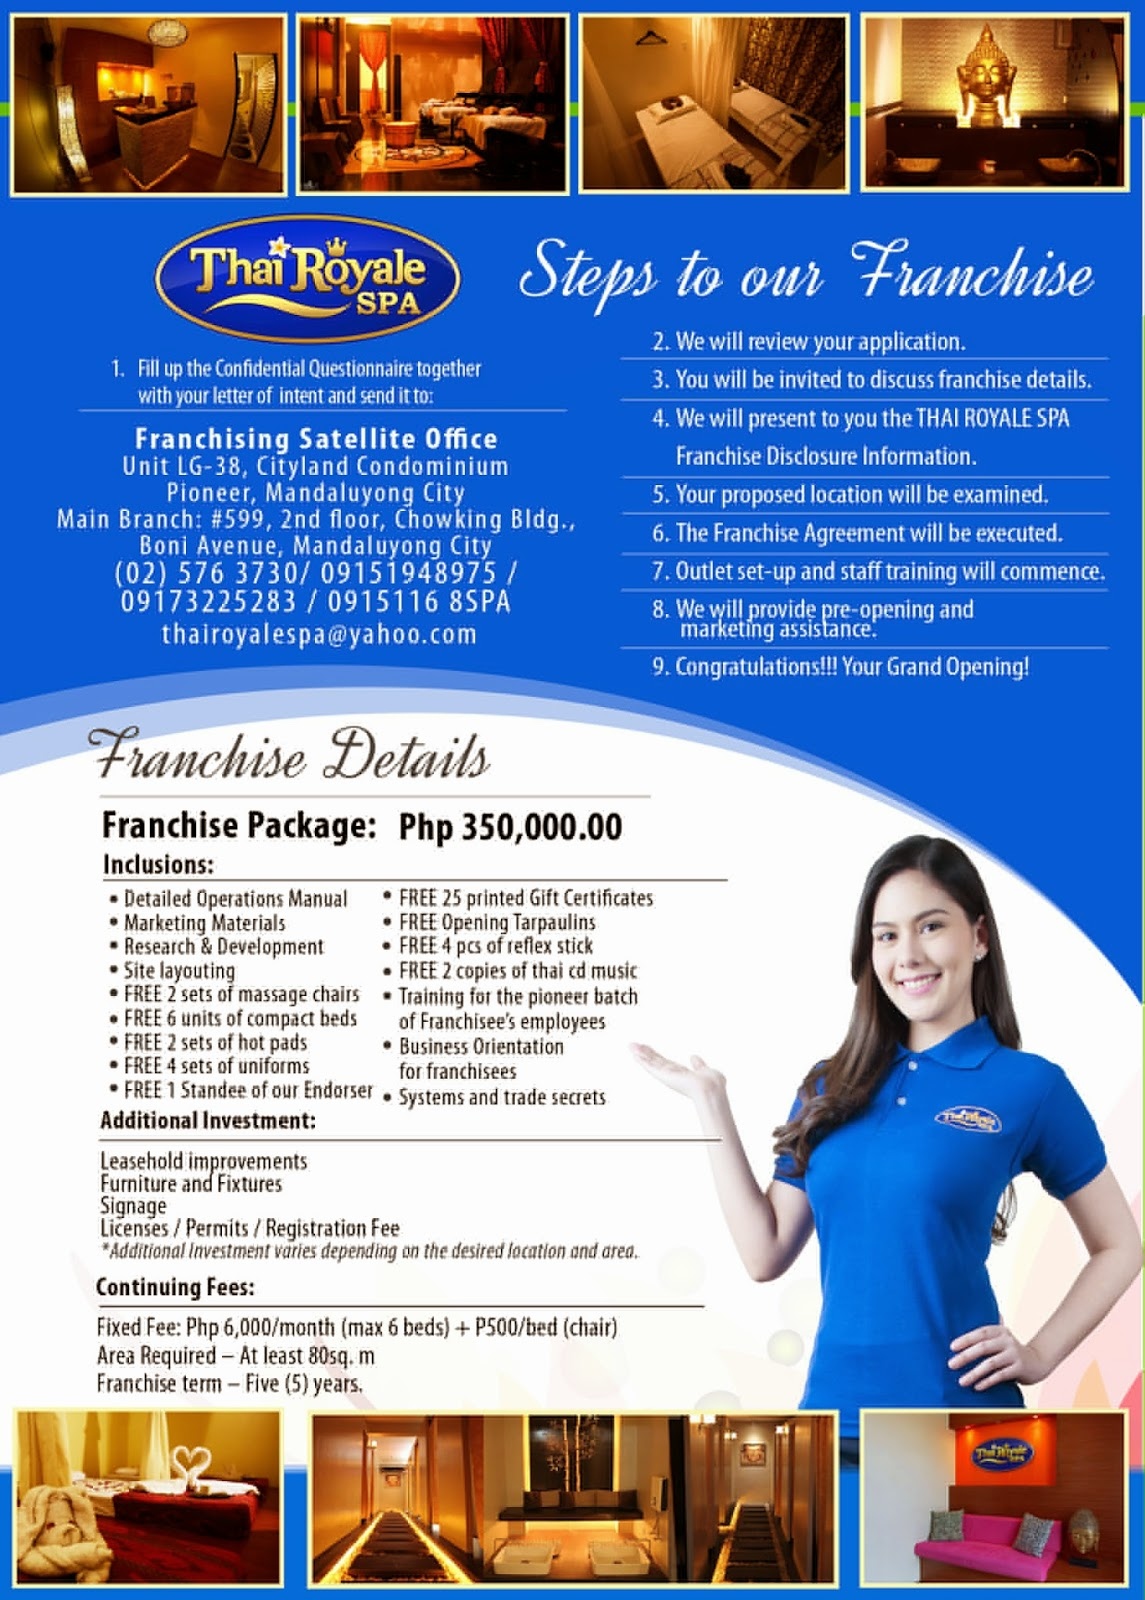 Thai royale spa an affordable massage and spa franchise for Spa uniform in the philippines